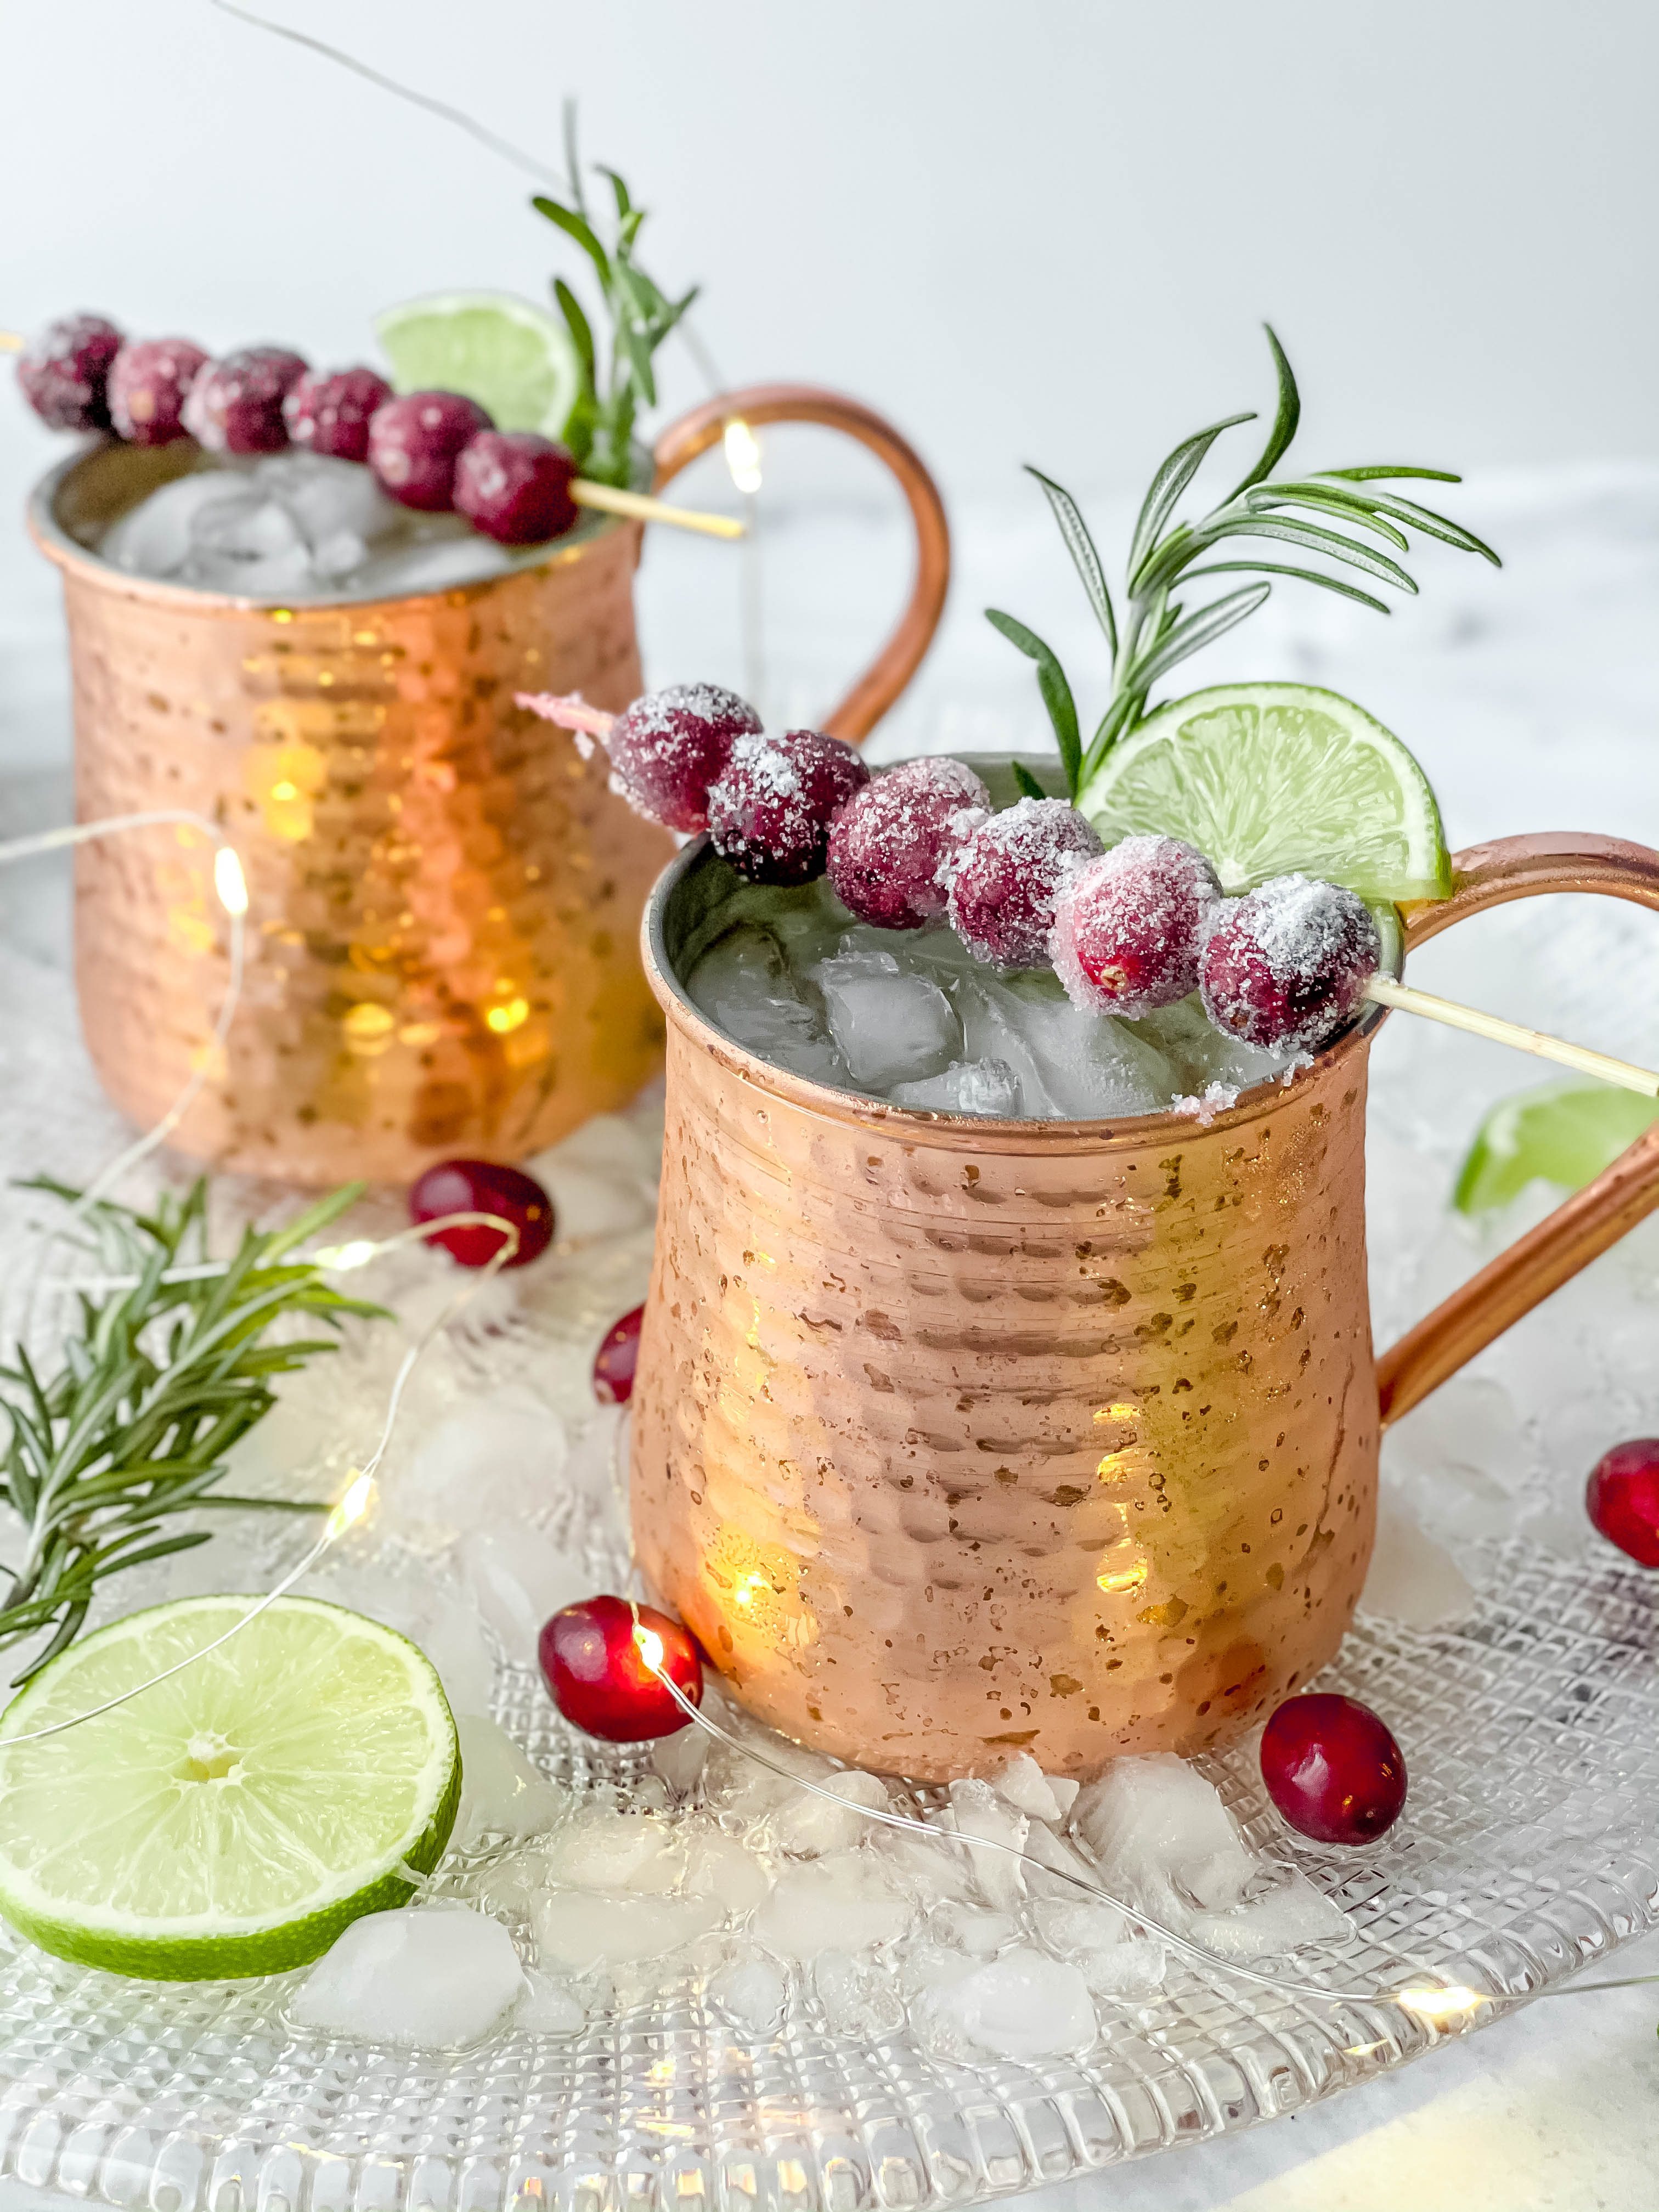 A Showstopping and Festive Cranberry Mule Cocktail